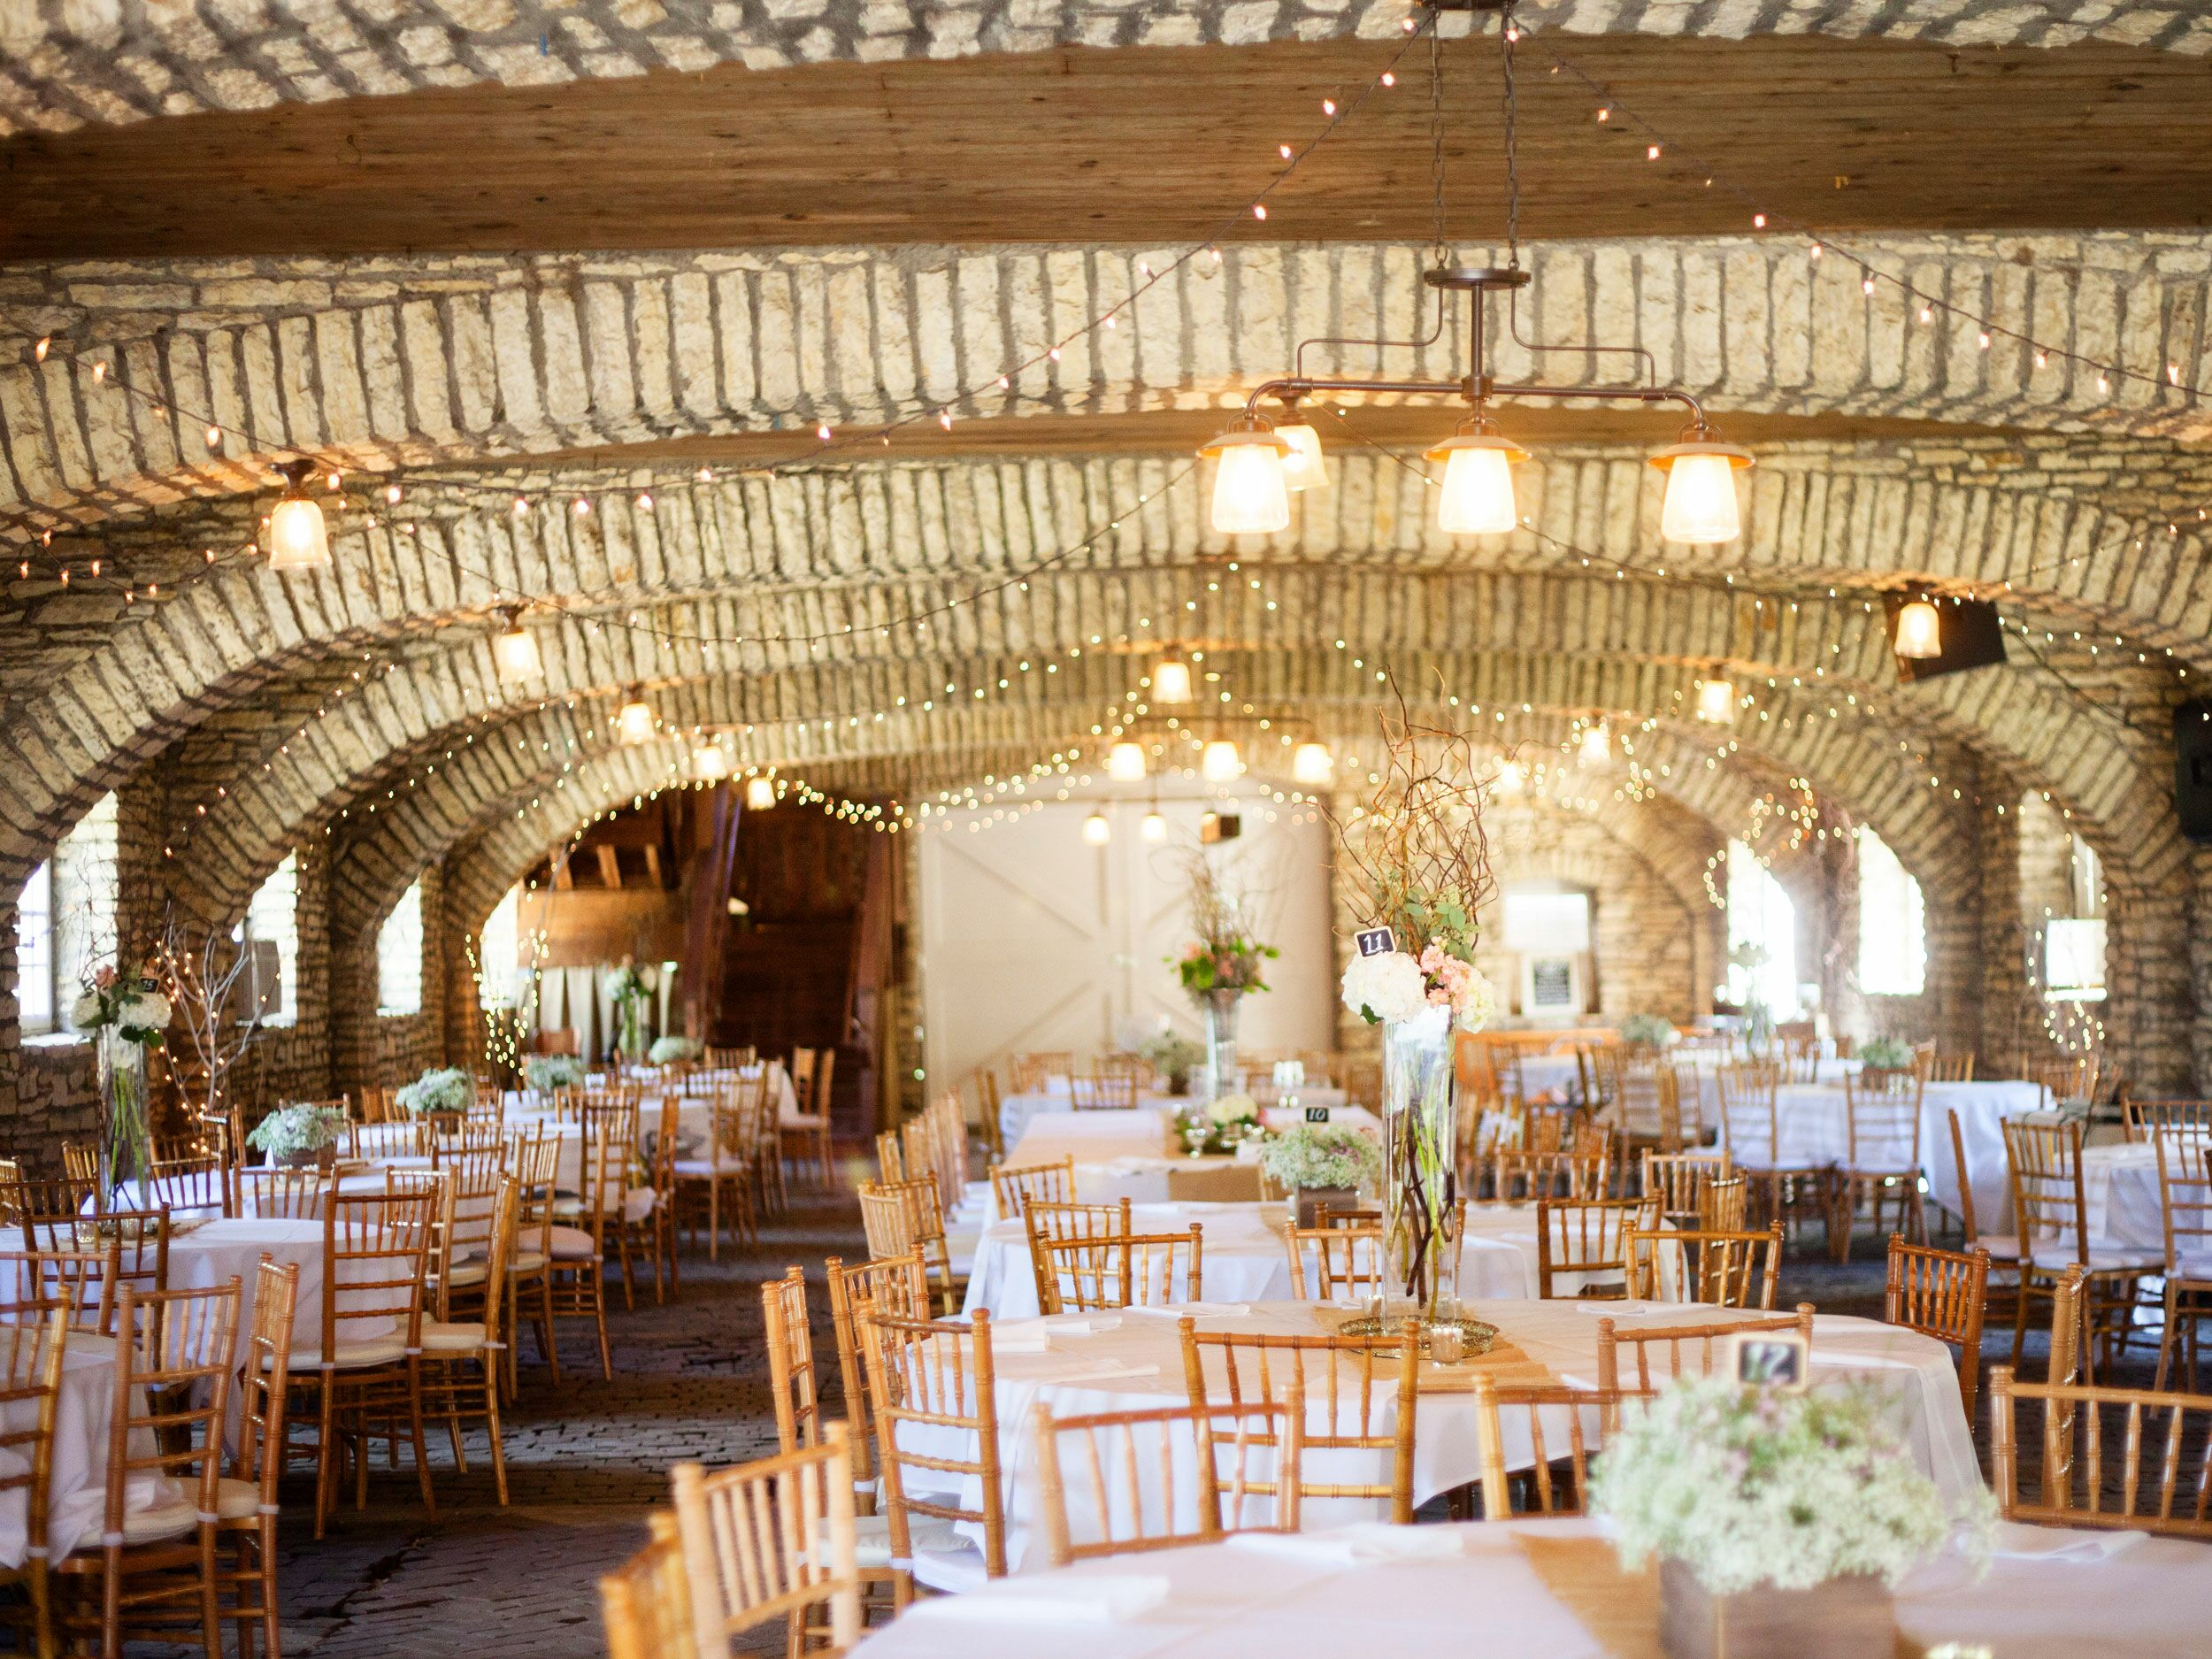 wedding barn venues reception minnesota venue rustic barns mn huber michelle weddings stone married boring rochester country receptions aren places